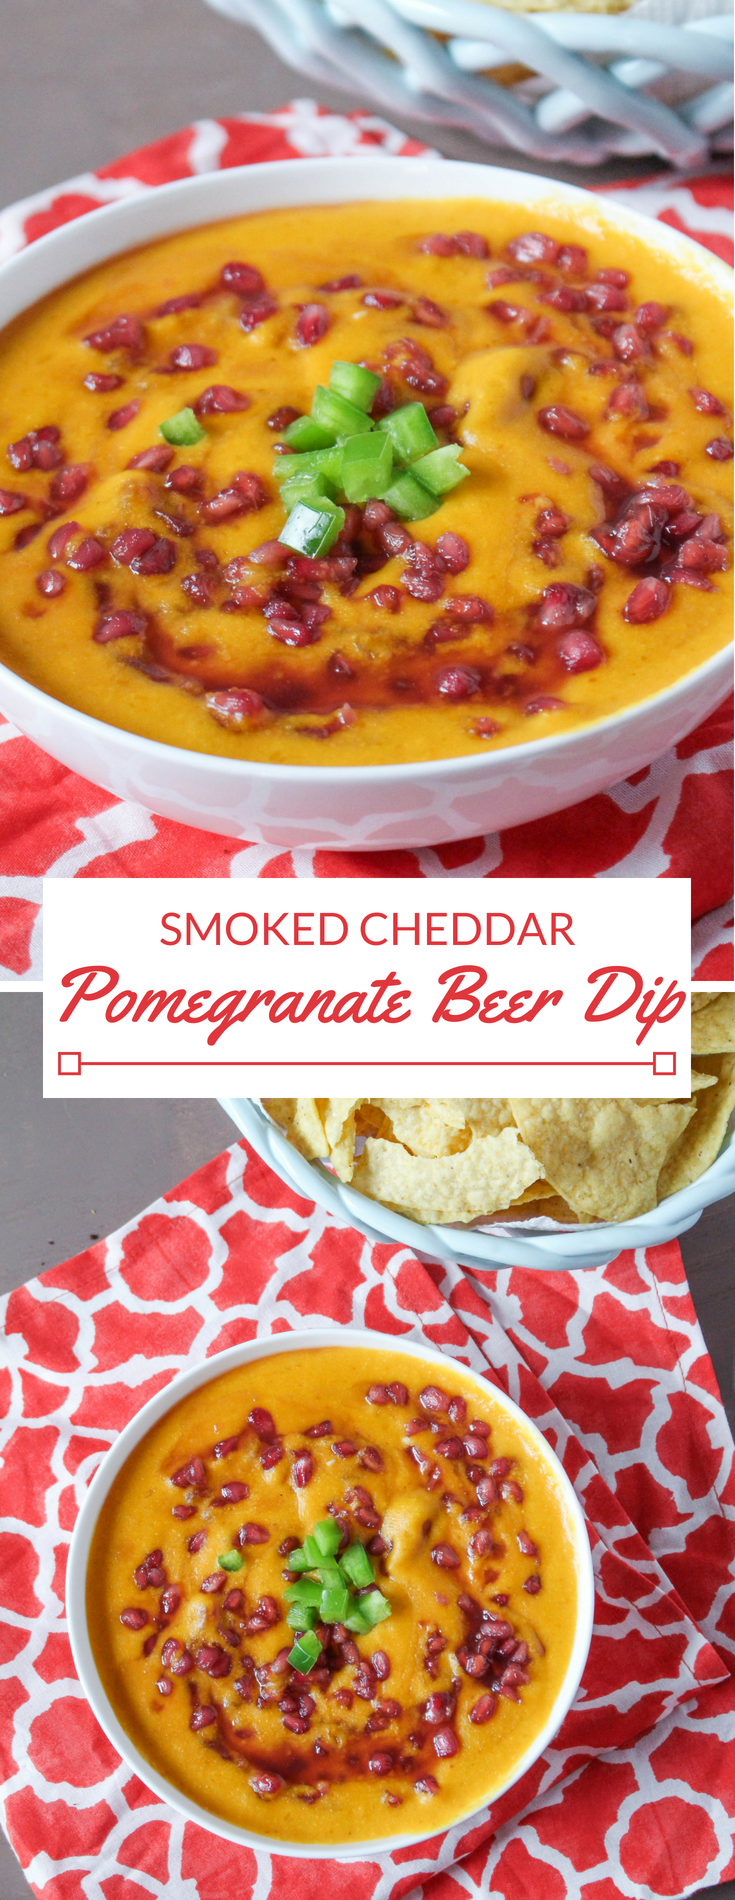 Smoked cheddar and pepper jack cheese is melted into your favorite beer and combined with fresh jalapeno and pomegranate seeds. Warm, sweet, smoky and savory dip for your favorite tortilla chips.